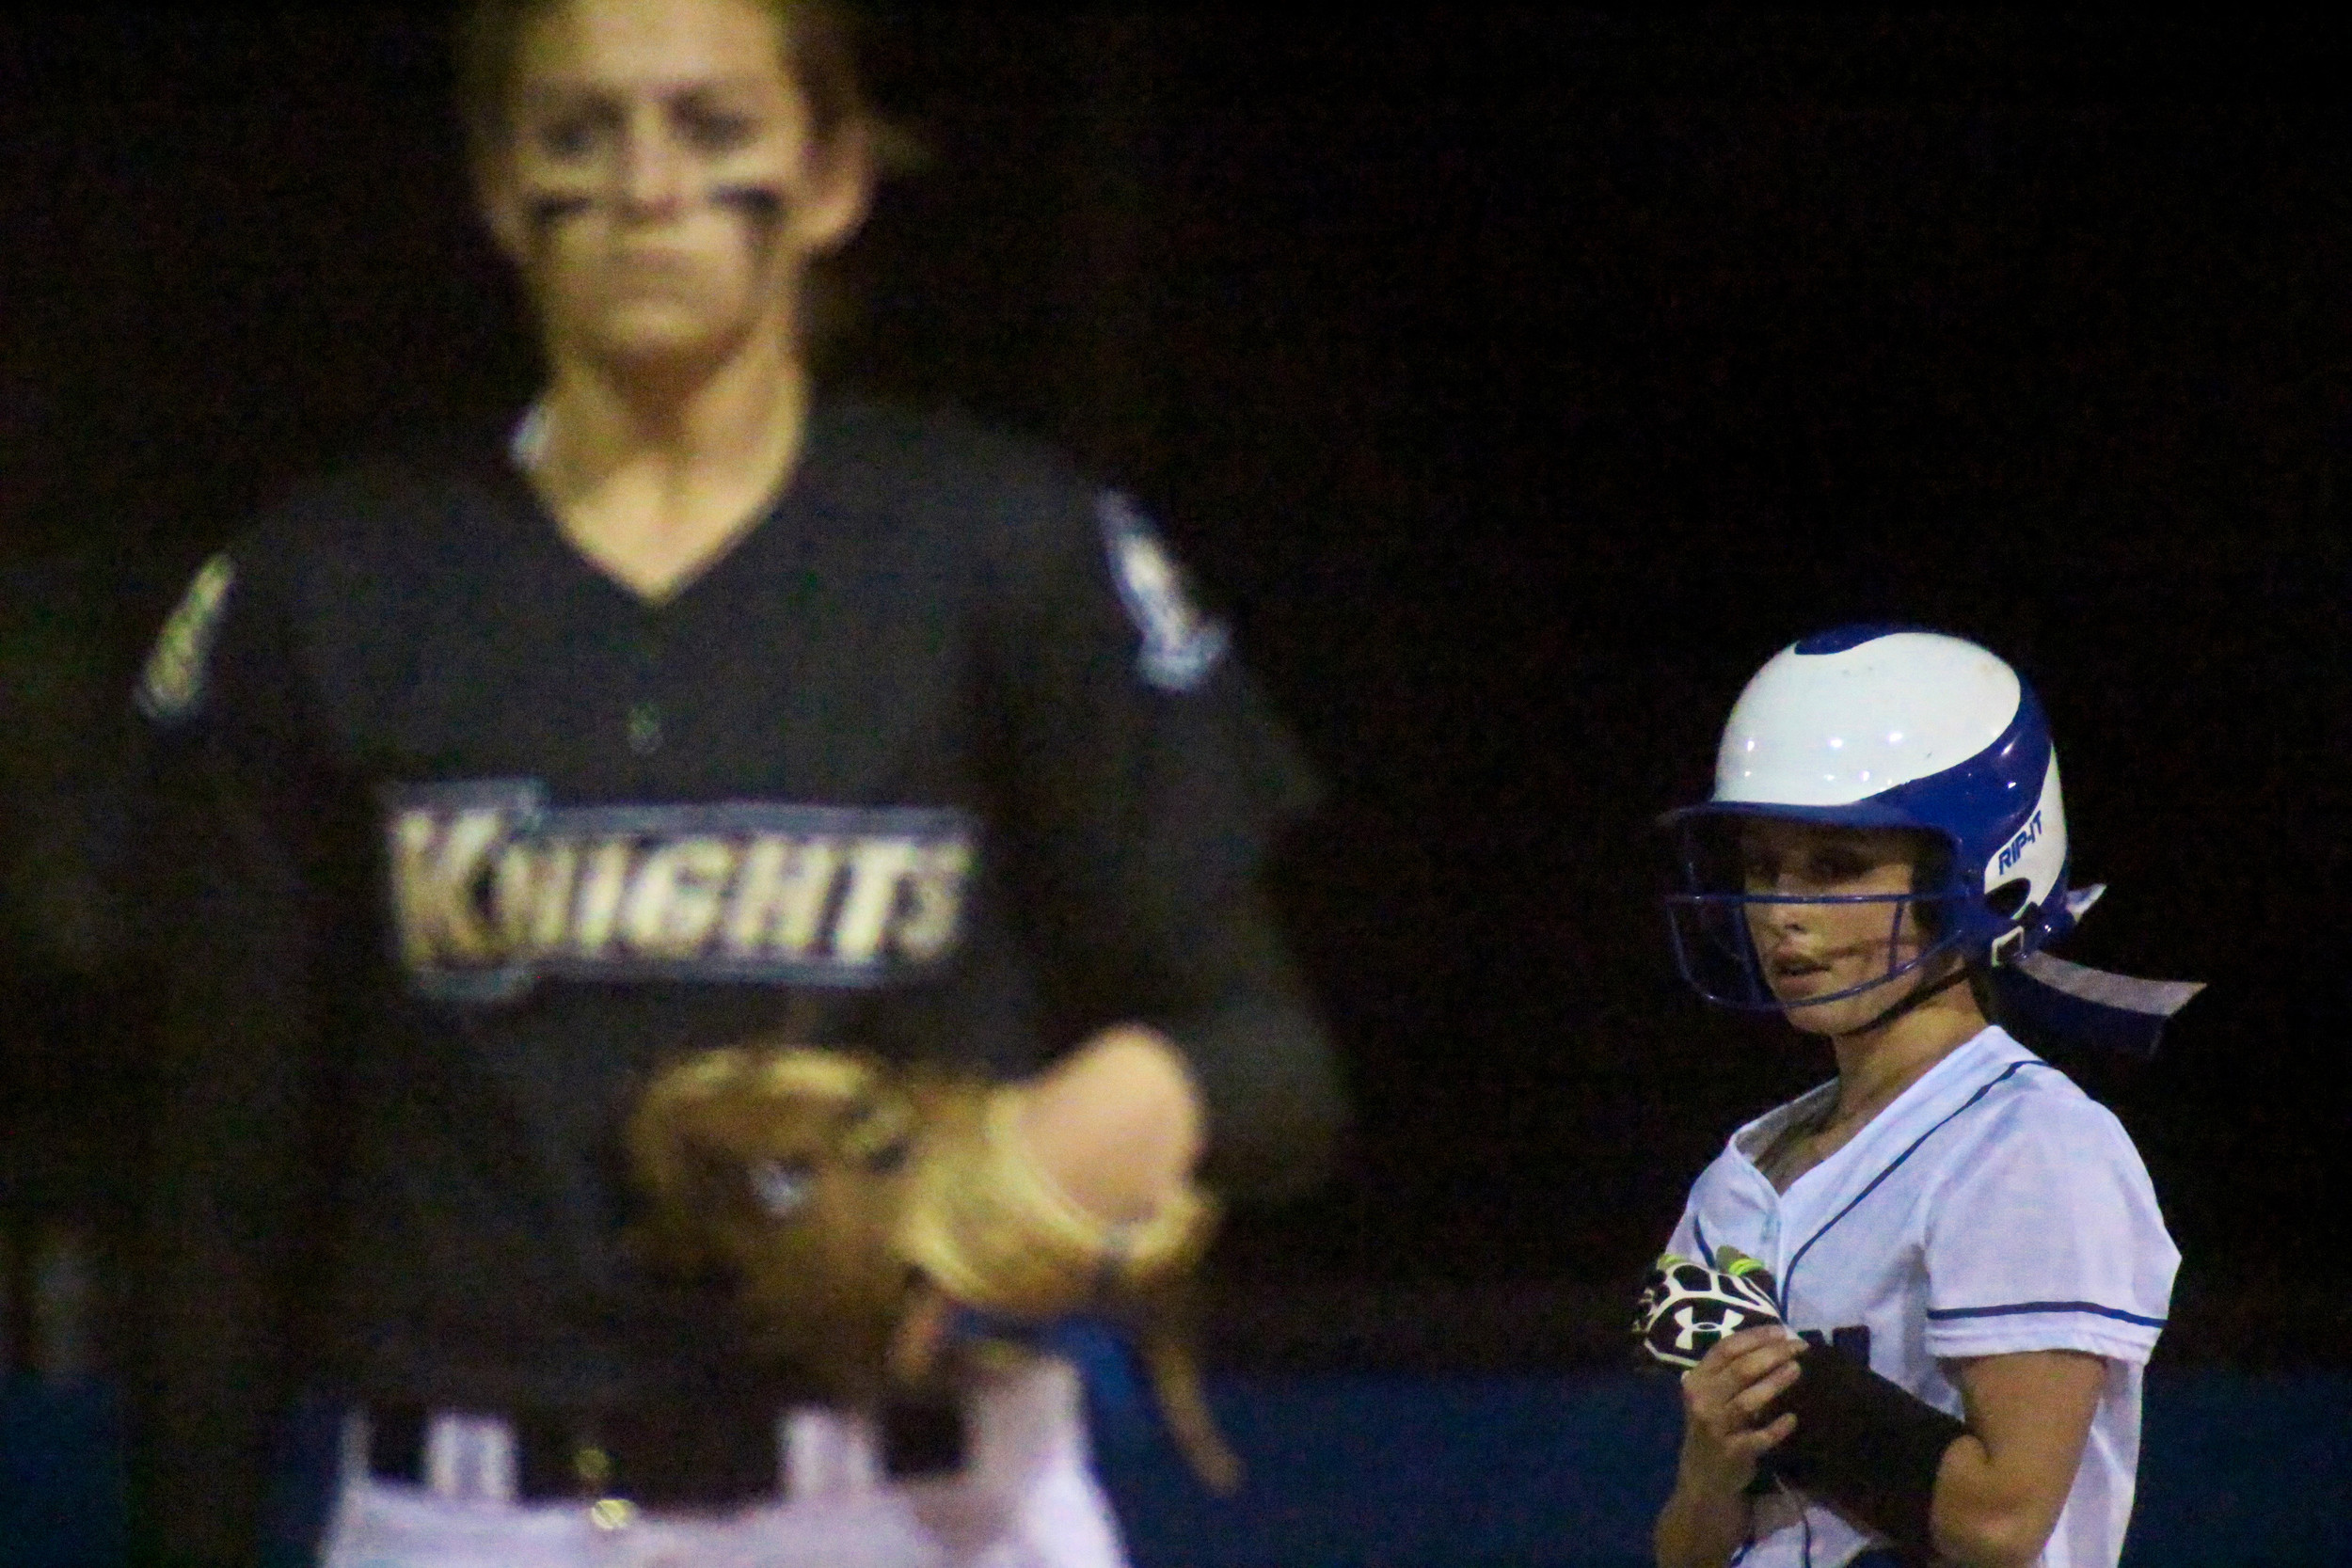 Clay High baserunner Allison Byrd stands on second base late in the Blue Devils 3-0 loss against county-rival Oakleaf as Knights pitcher Kelsey Sweatt sets to pitch. Byrd got to third base but was unable to score.